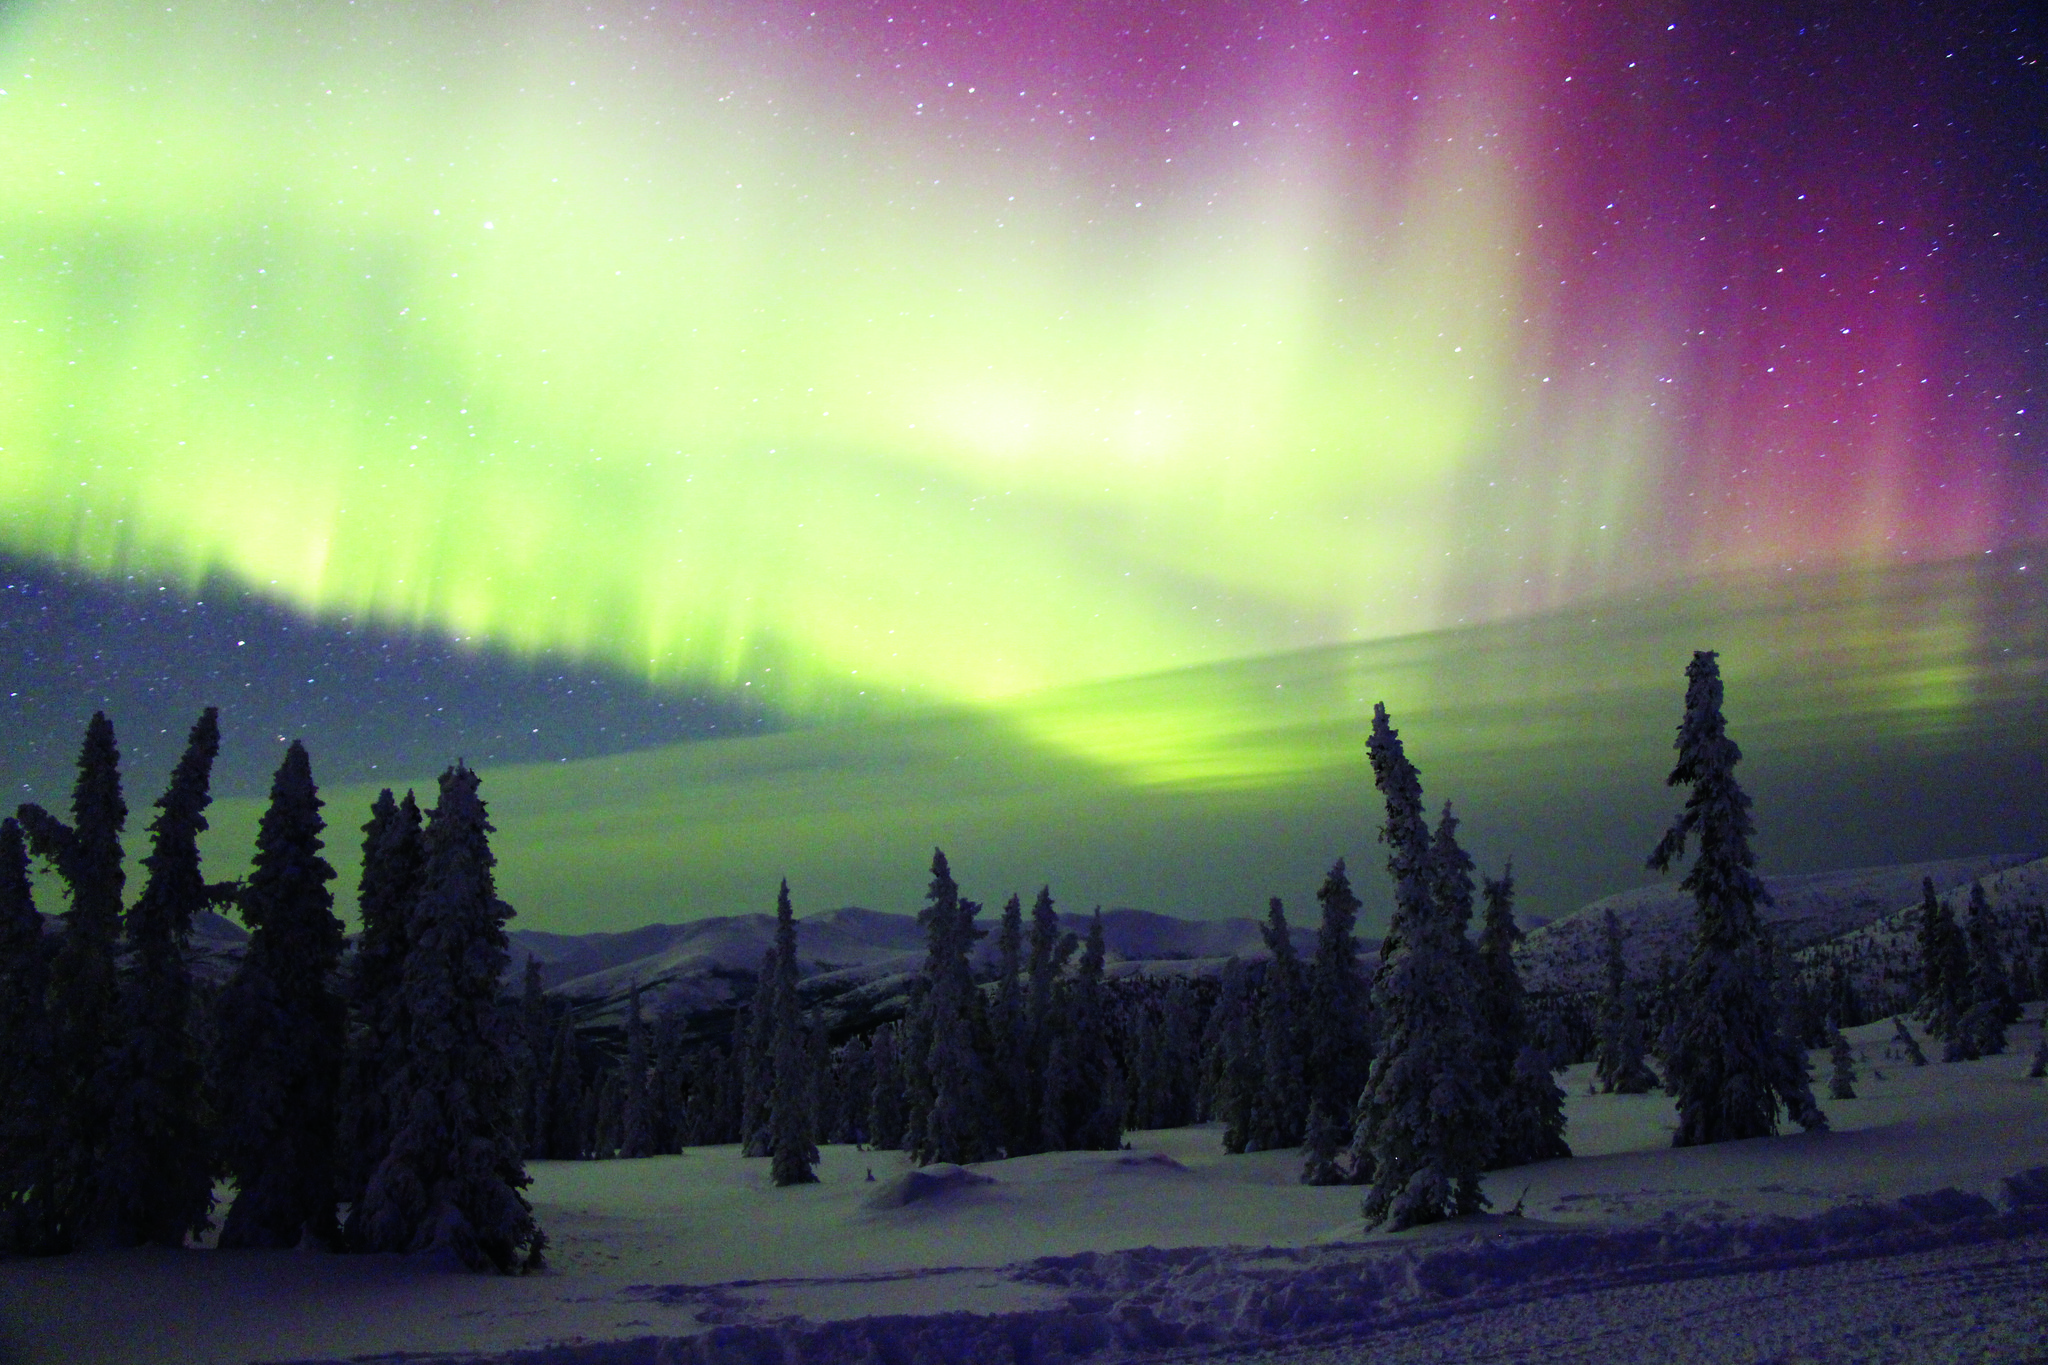 See the wonders of the northern lights on a winter tour of Alaska